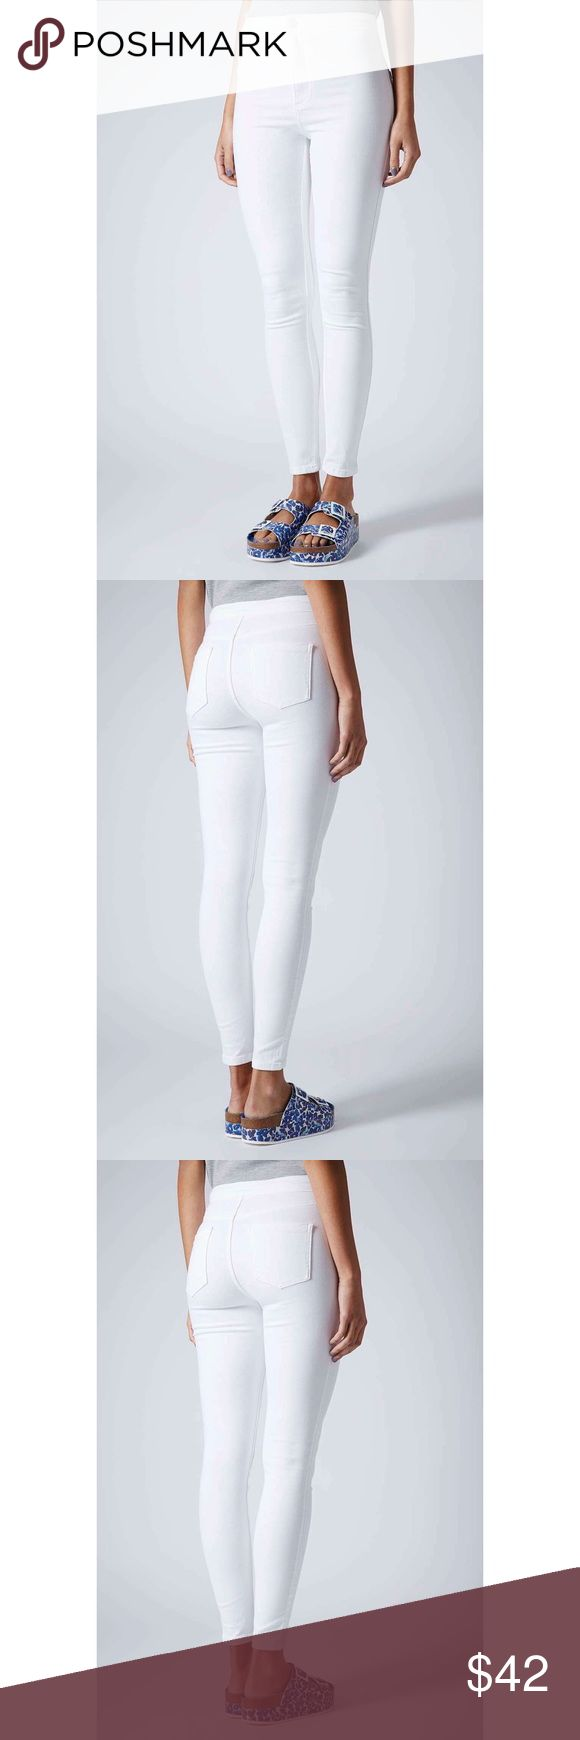 "NWOT Topshop White Joni Holding Power Skinny Jeans Brand new without tags and unworn Topshop Joni ""Holding Power"" jeans in white. Still has tag on back edge of waist. L30. Topshop Jeans Skinny"